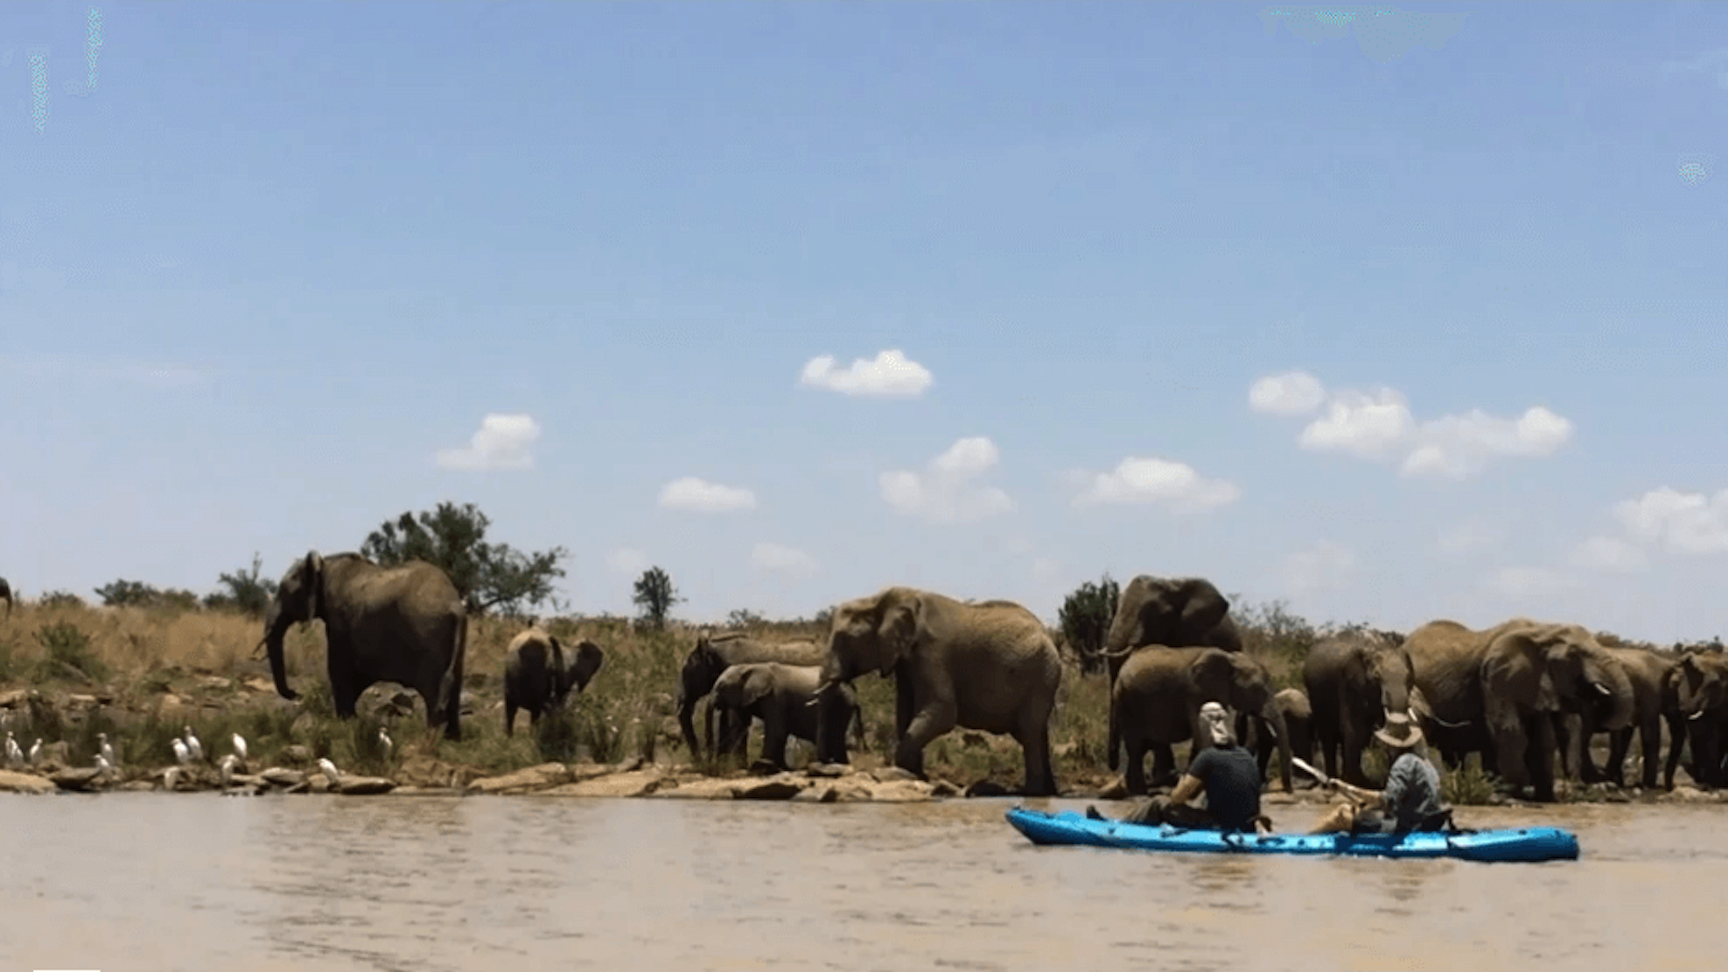 kayaking with Elephants